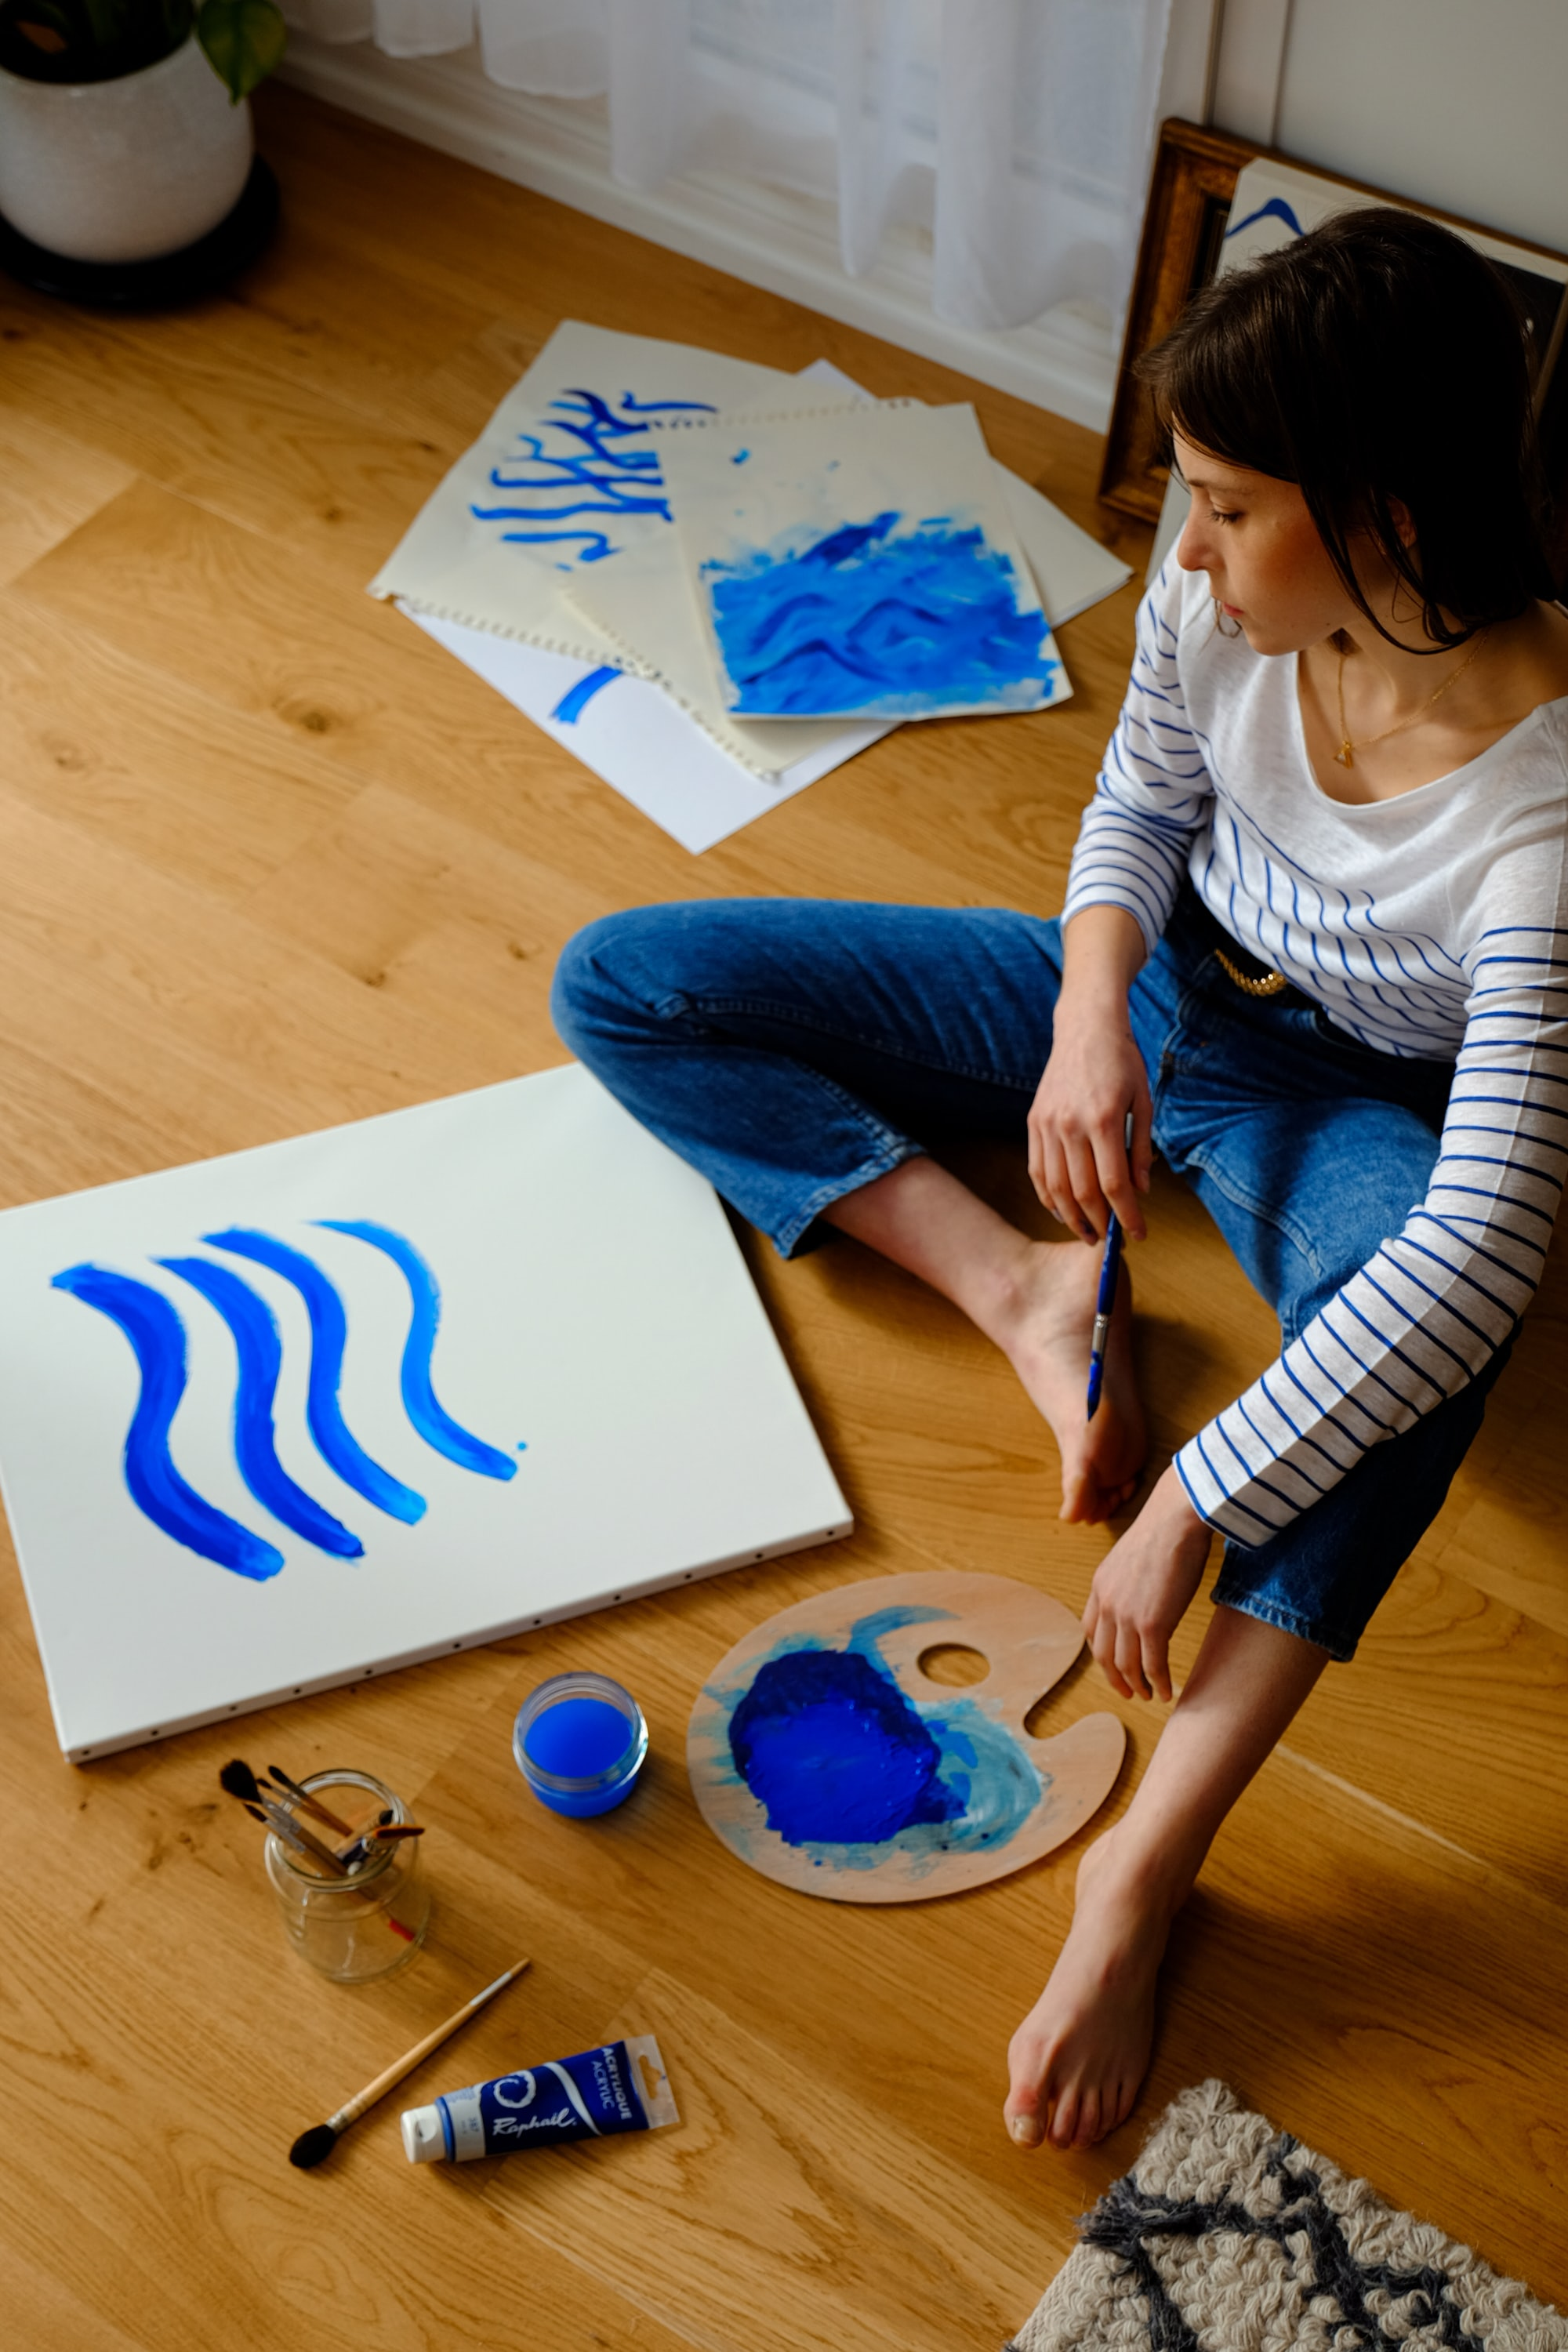 Woman, wearing striped shirt and jeans, sits on the floor and paints a canvas with blue wavy lines. matthieu-jungfer-kBuAJnv31aQ-unsplash